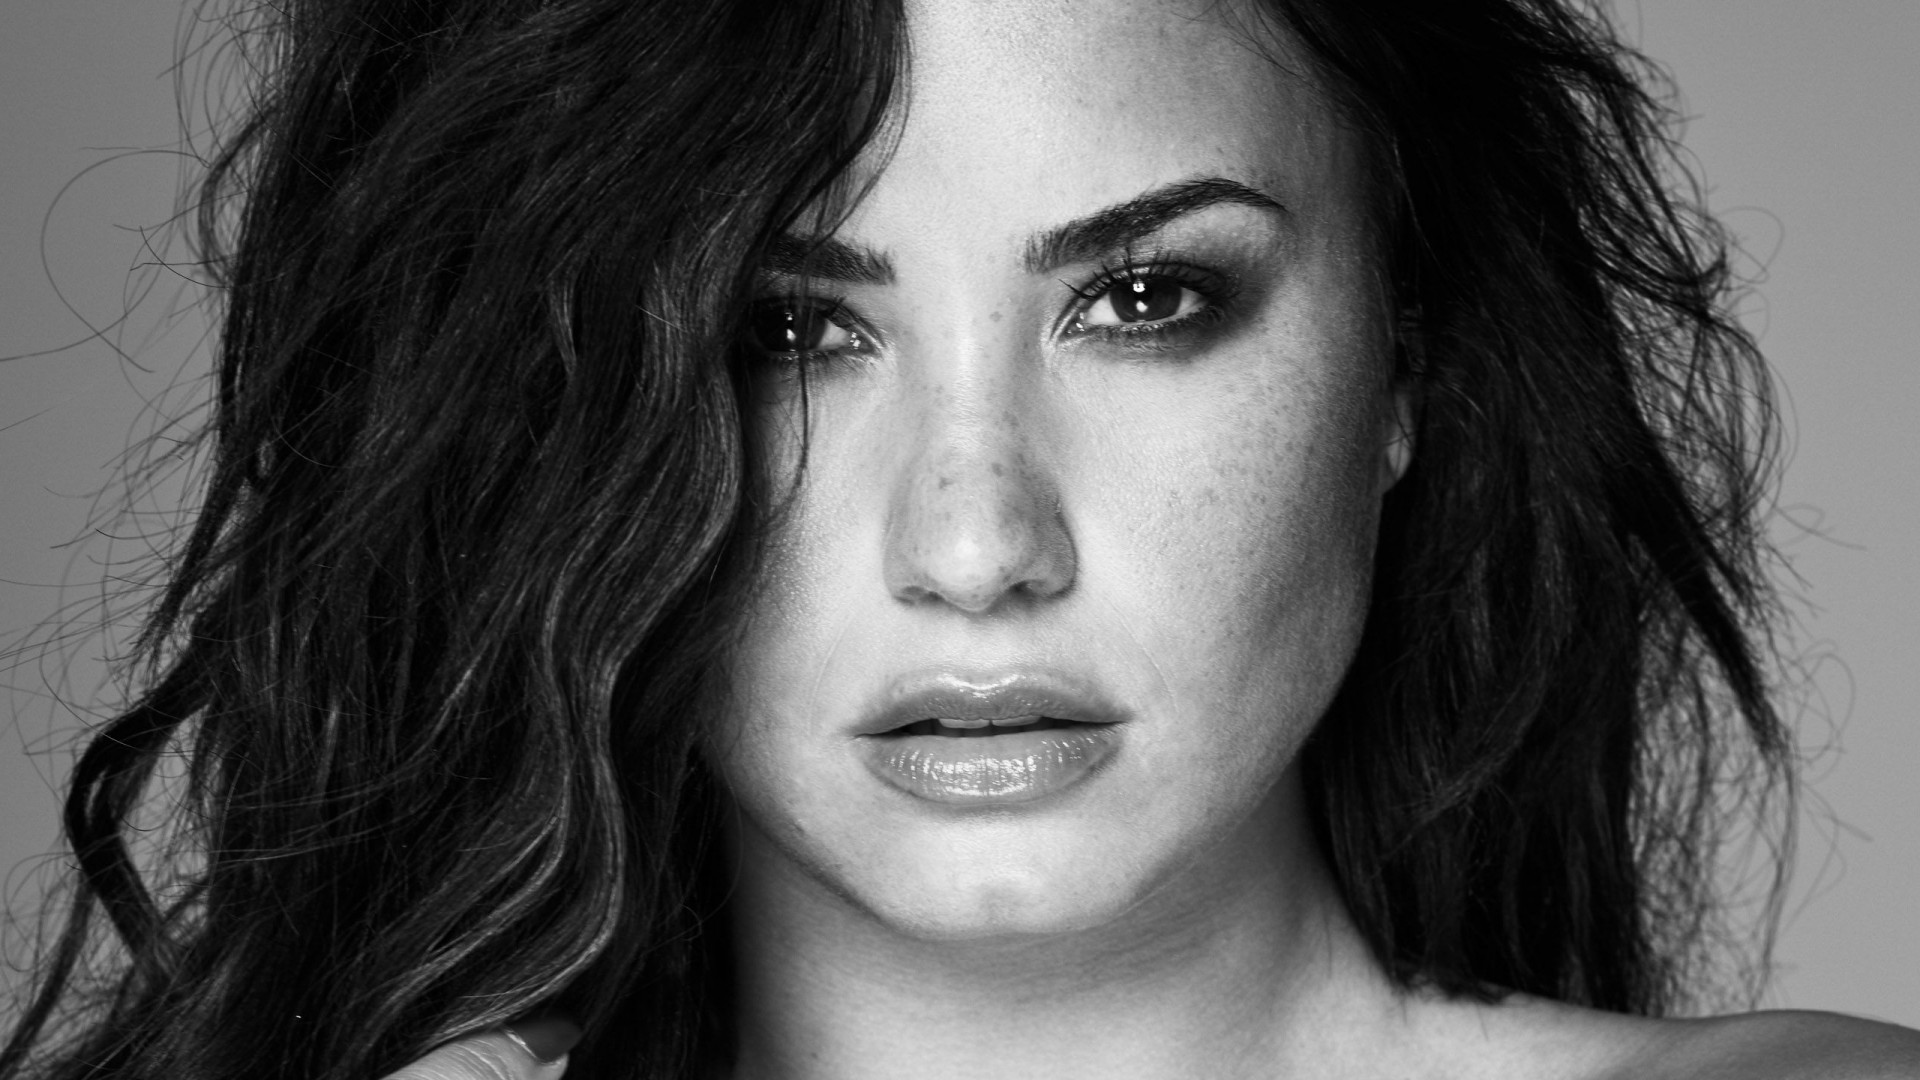 Demi Lovato black and white photo hd wallpaper 1920x1080